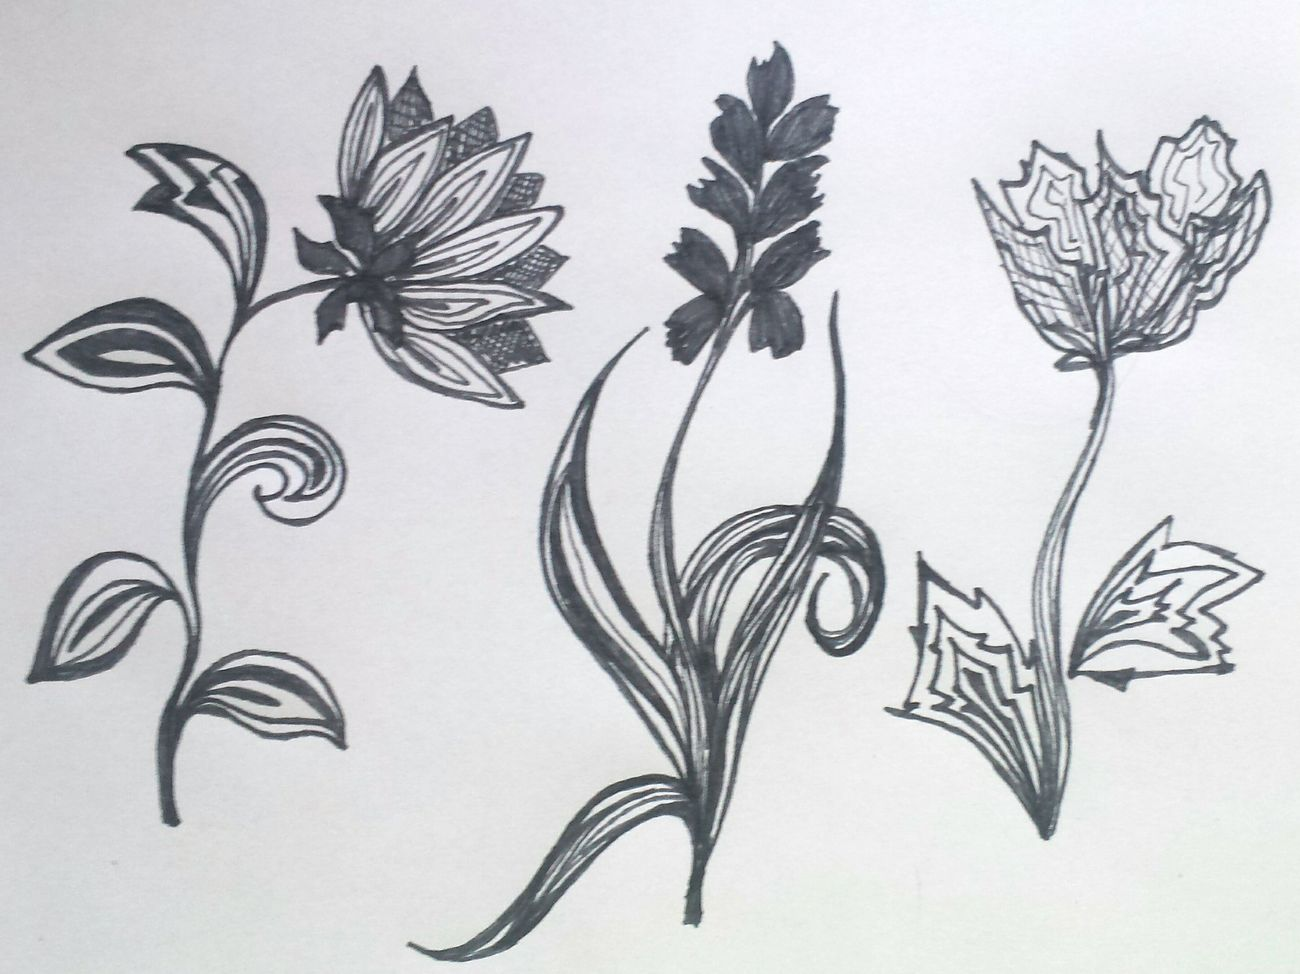 Sketch Black Color Paper Plant Drawing - Art Product Drawing Flowers Sketch Pad No People Ink